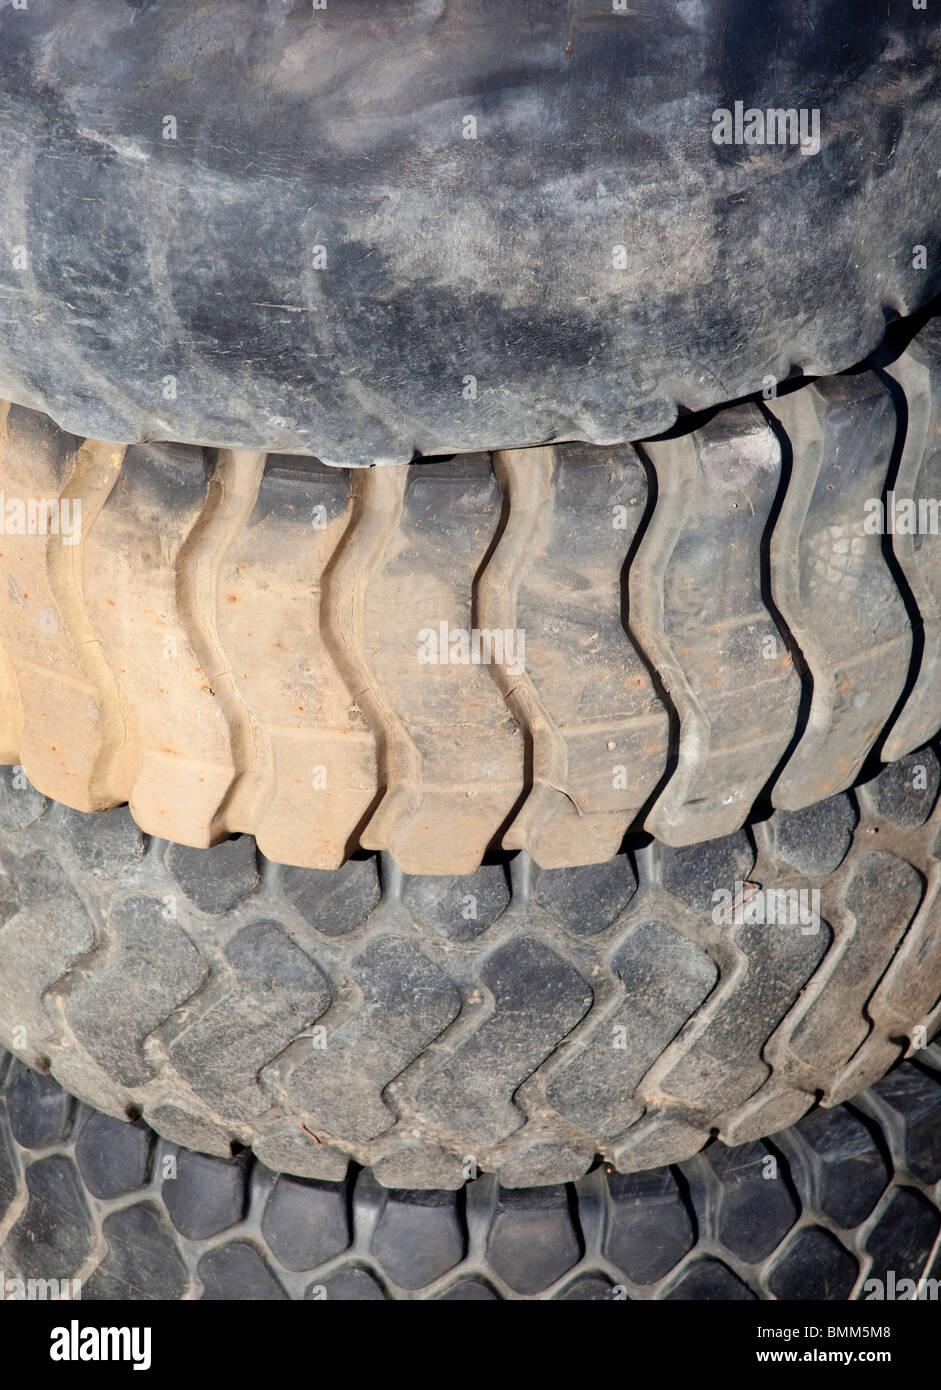 Pile of used front loader tyres - Stock Image